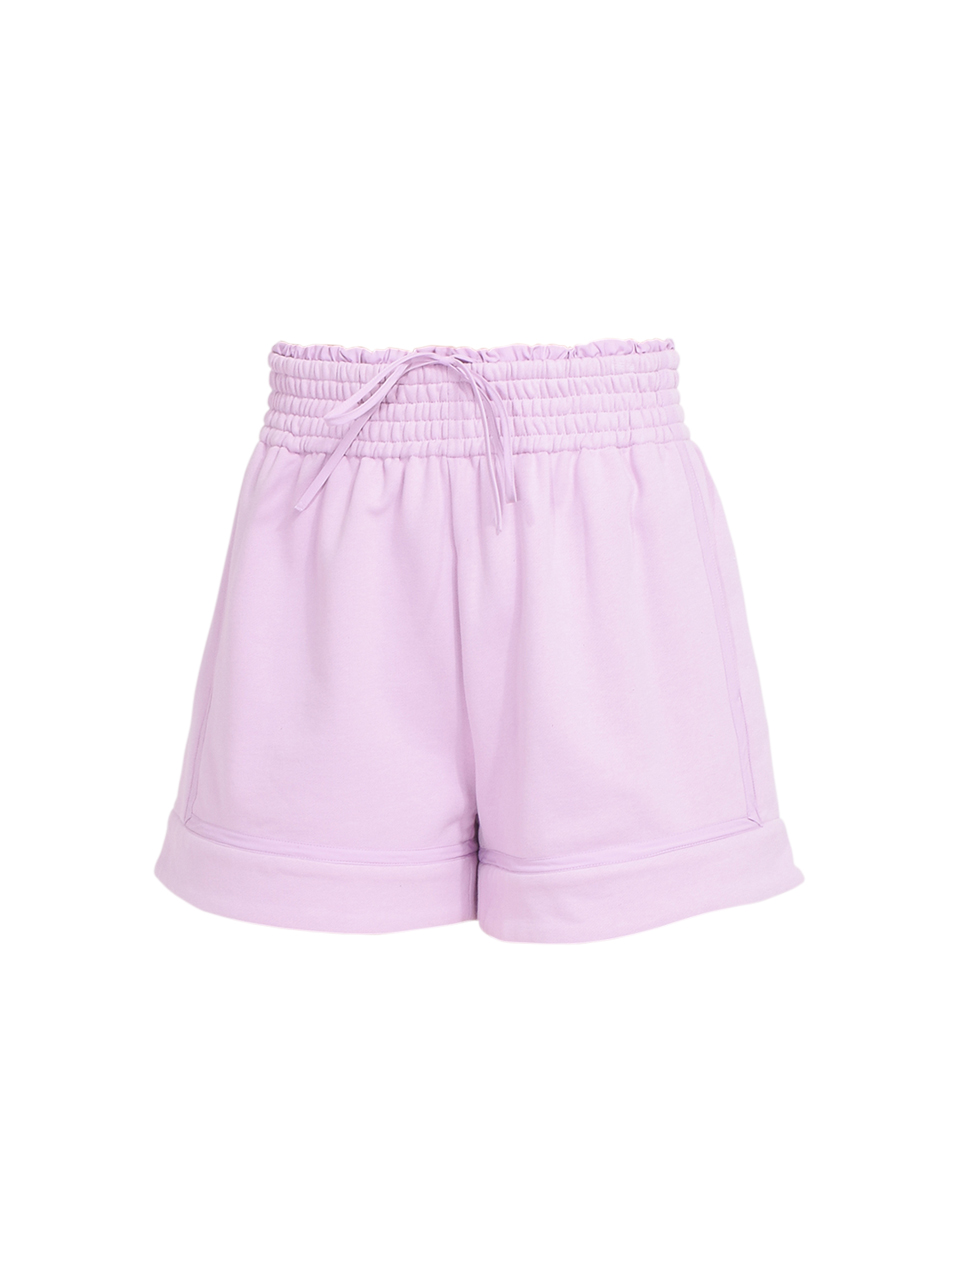 3.1 Phillip Lim French Terry Boxer Shorts in Lavender